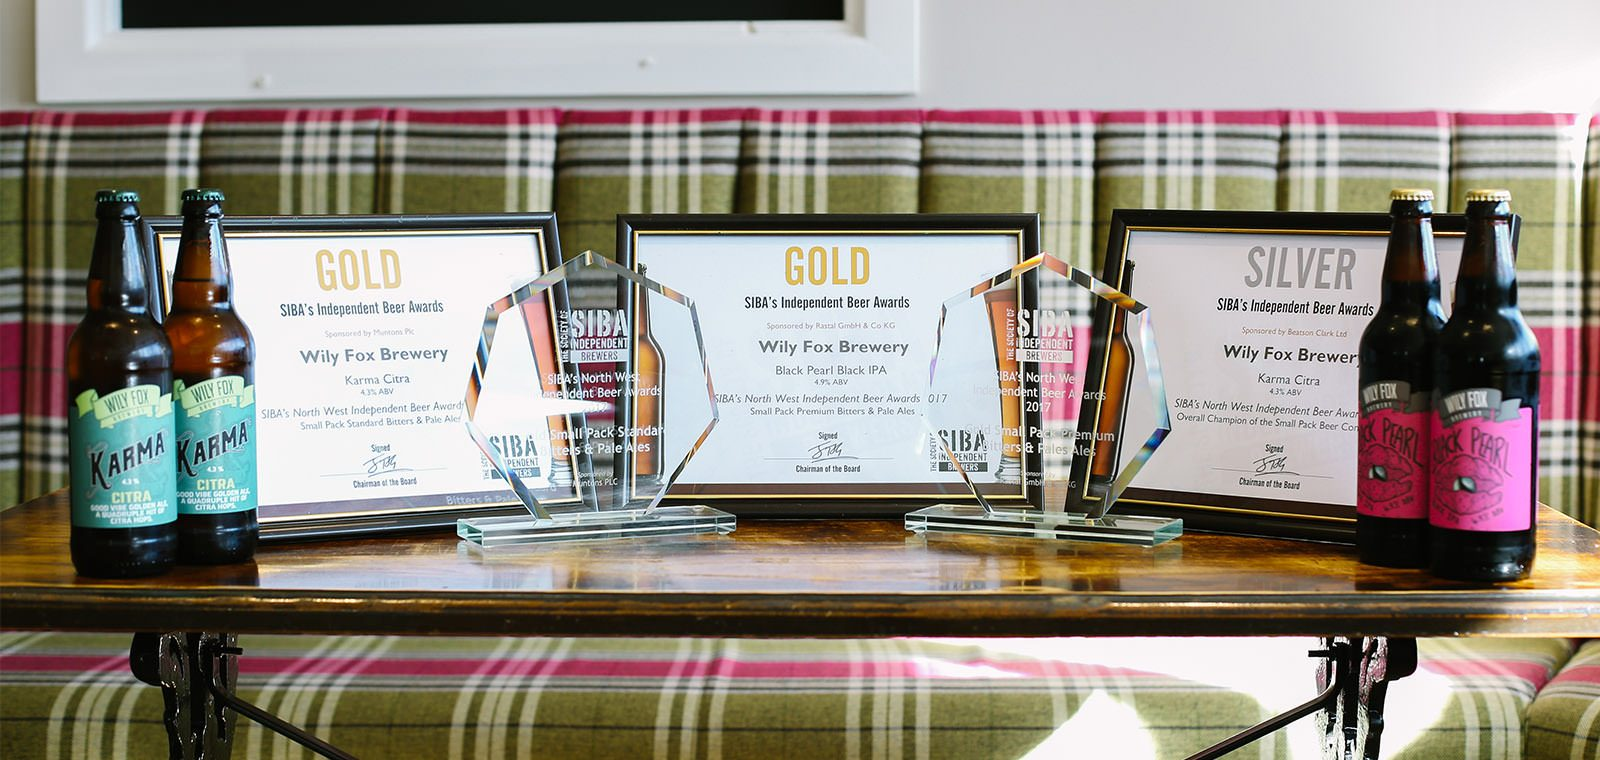 SCOOPING UP A FEW GOLD & SILVER SIBA BEER AWARDS